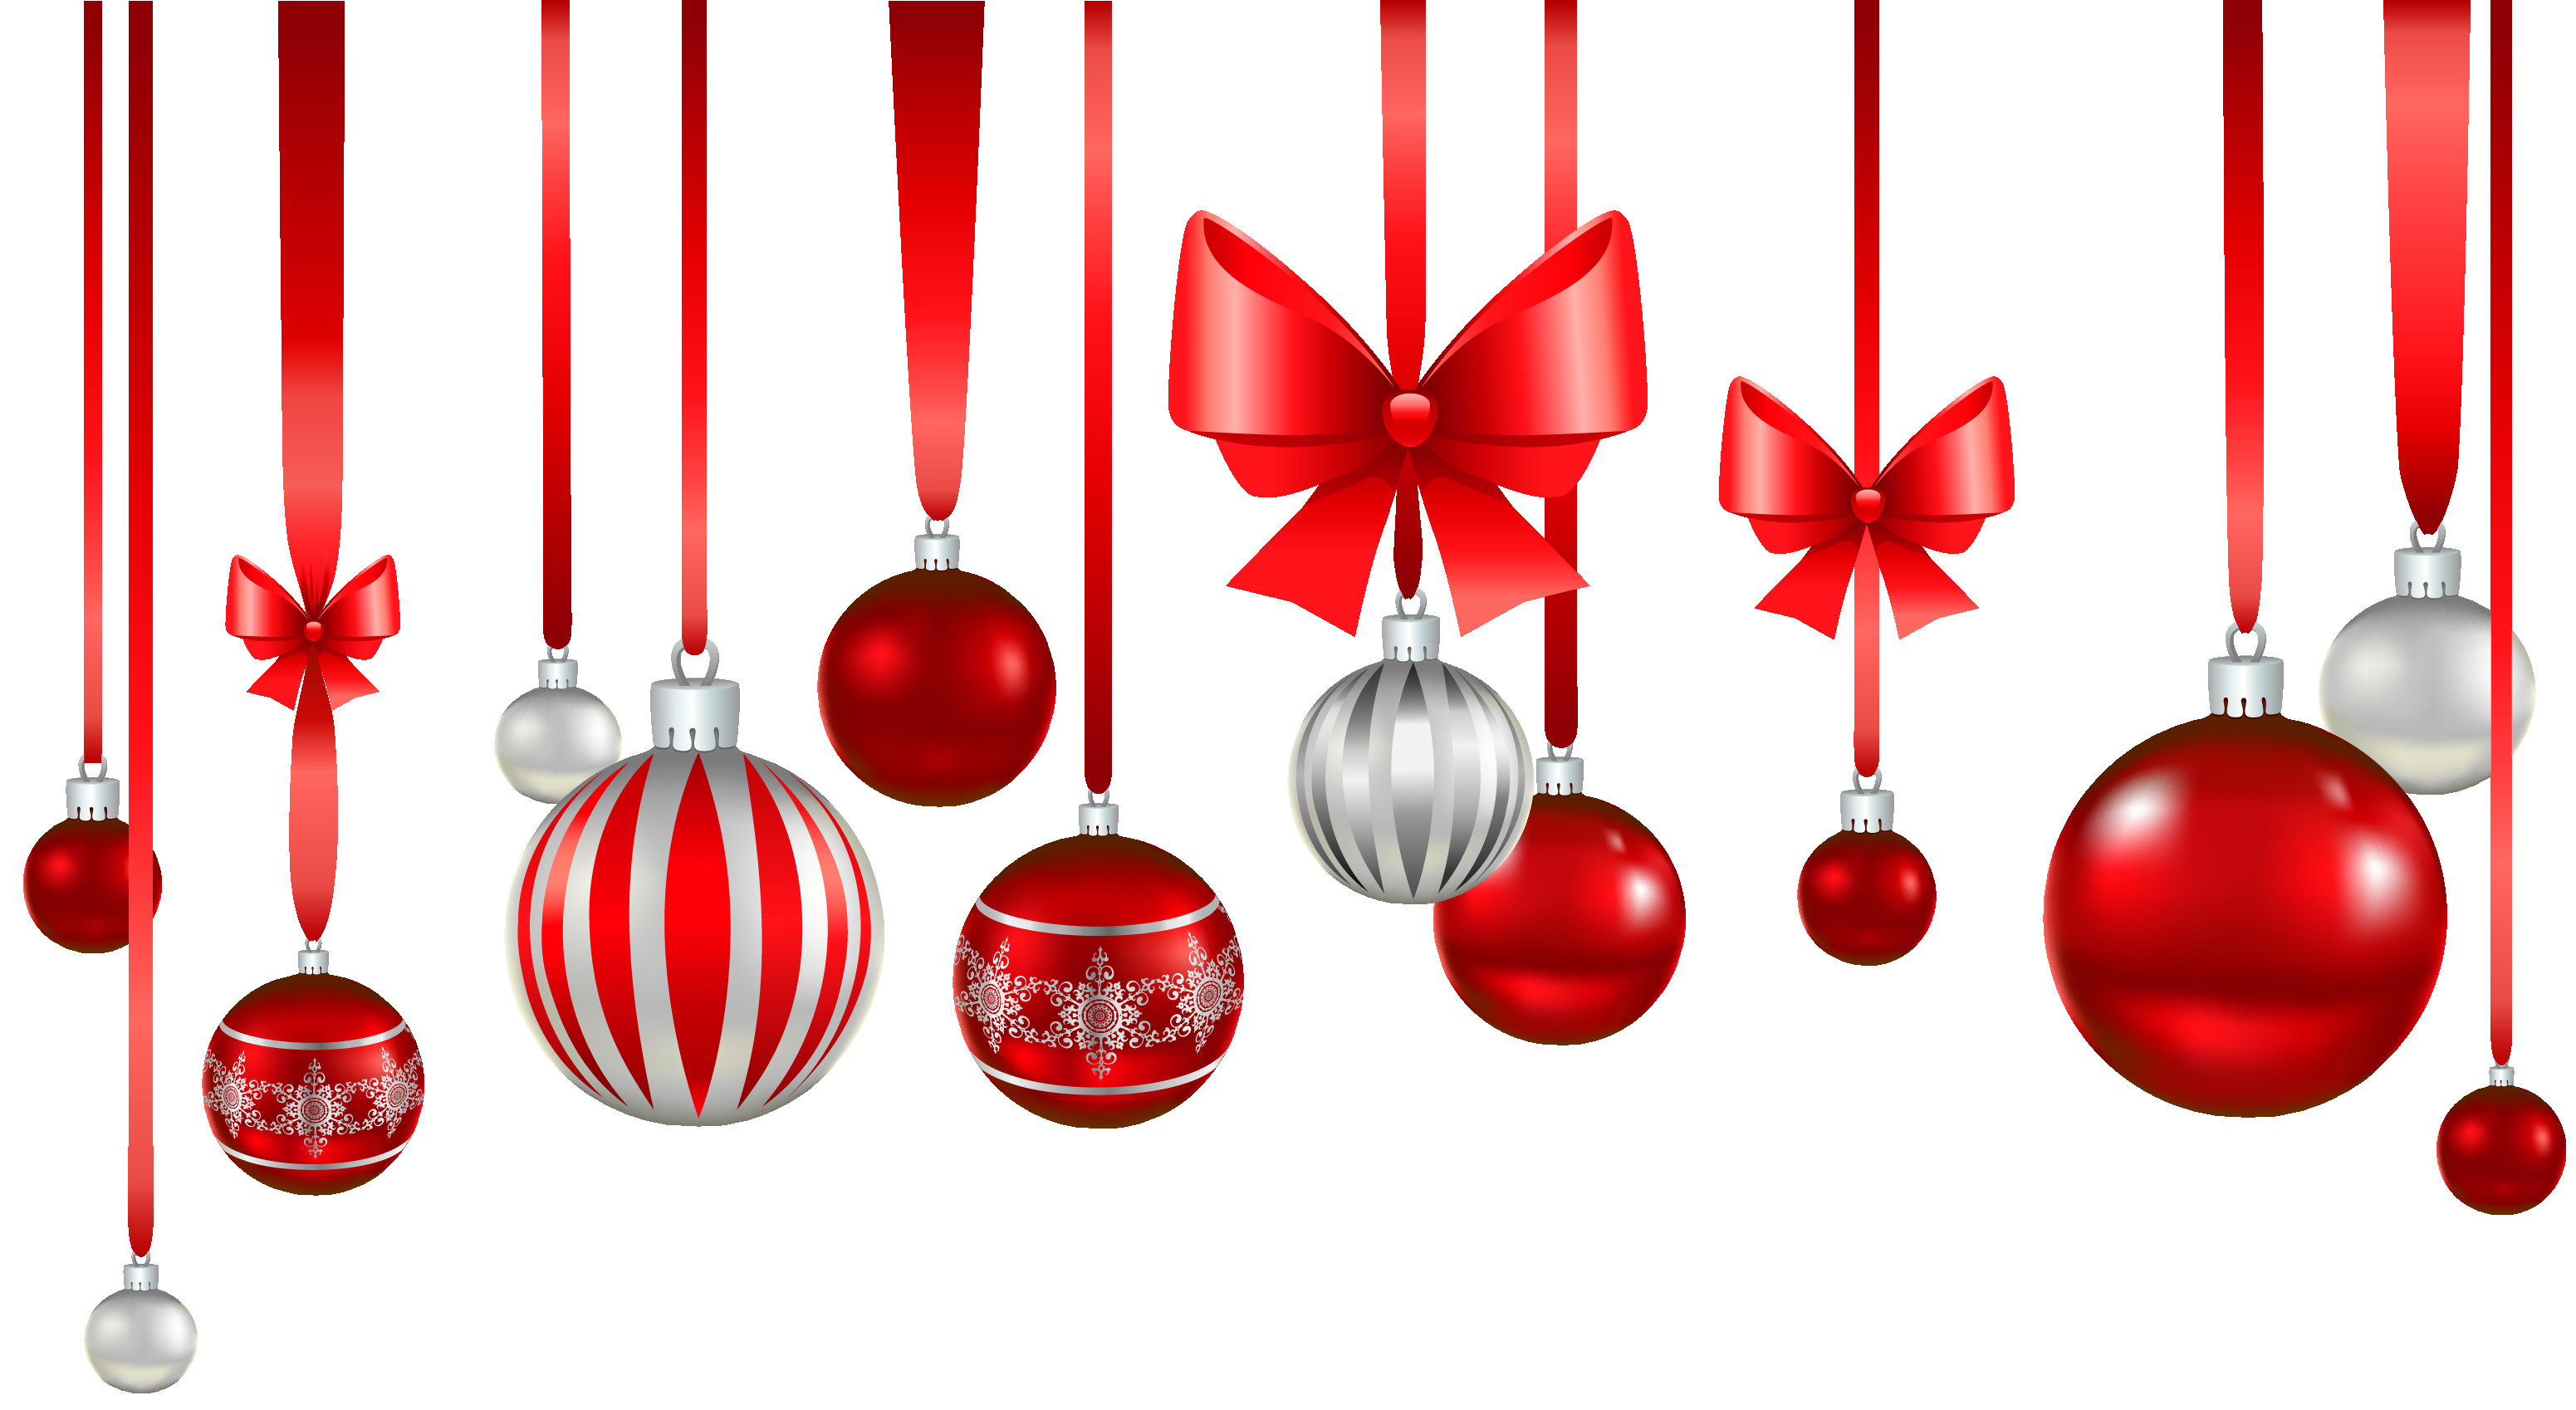 Red Christmas Balls Inspirational Christmas Red White Balls ornament Png Picture Of Luxury 40 Pictures Red Christmas Balls